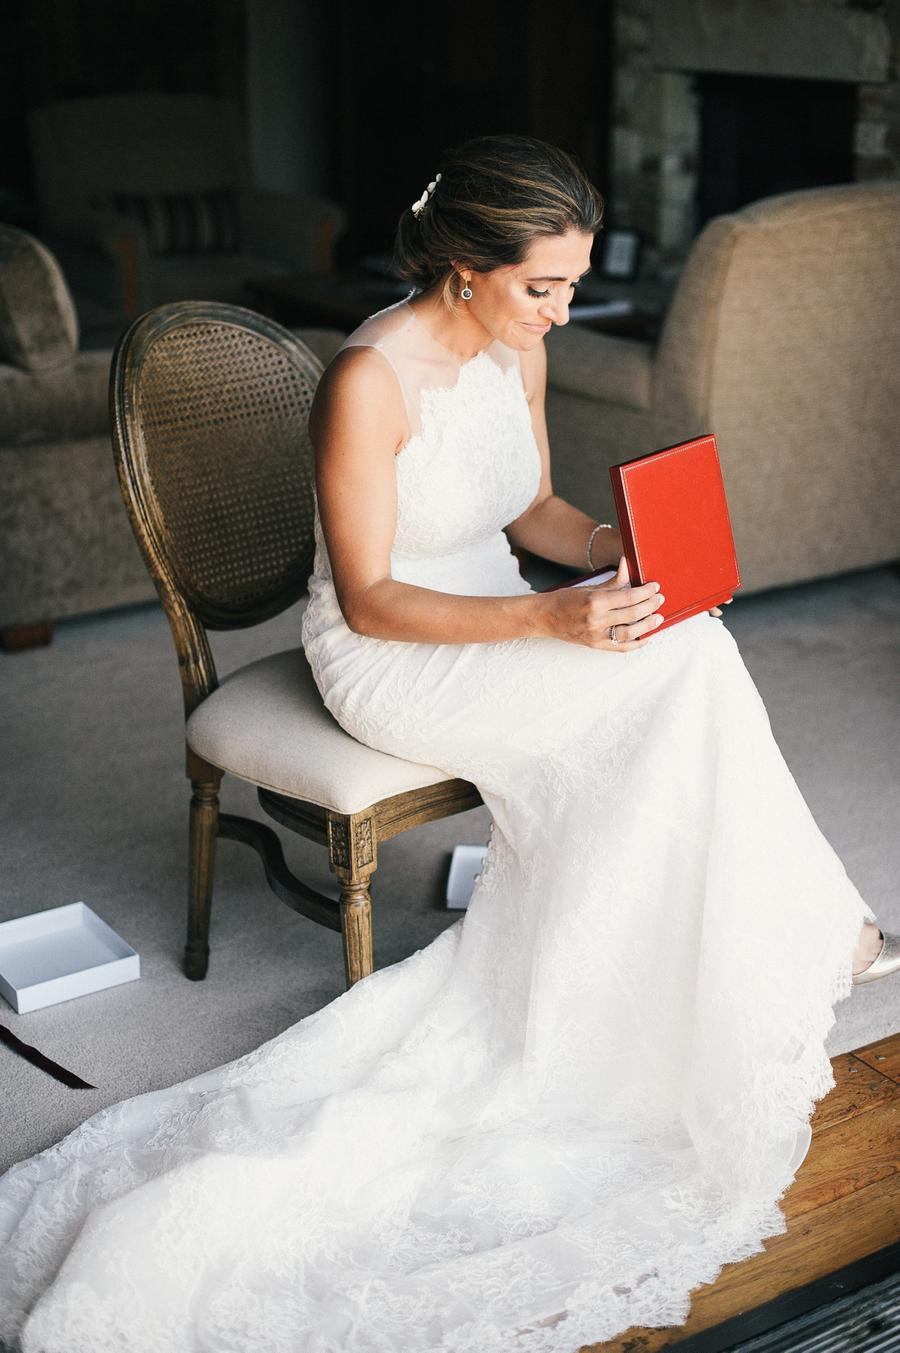 quiet-time-on-your-wedding-day.jpg